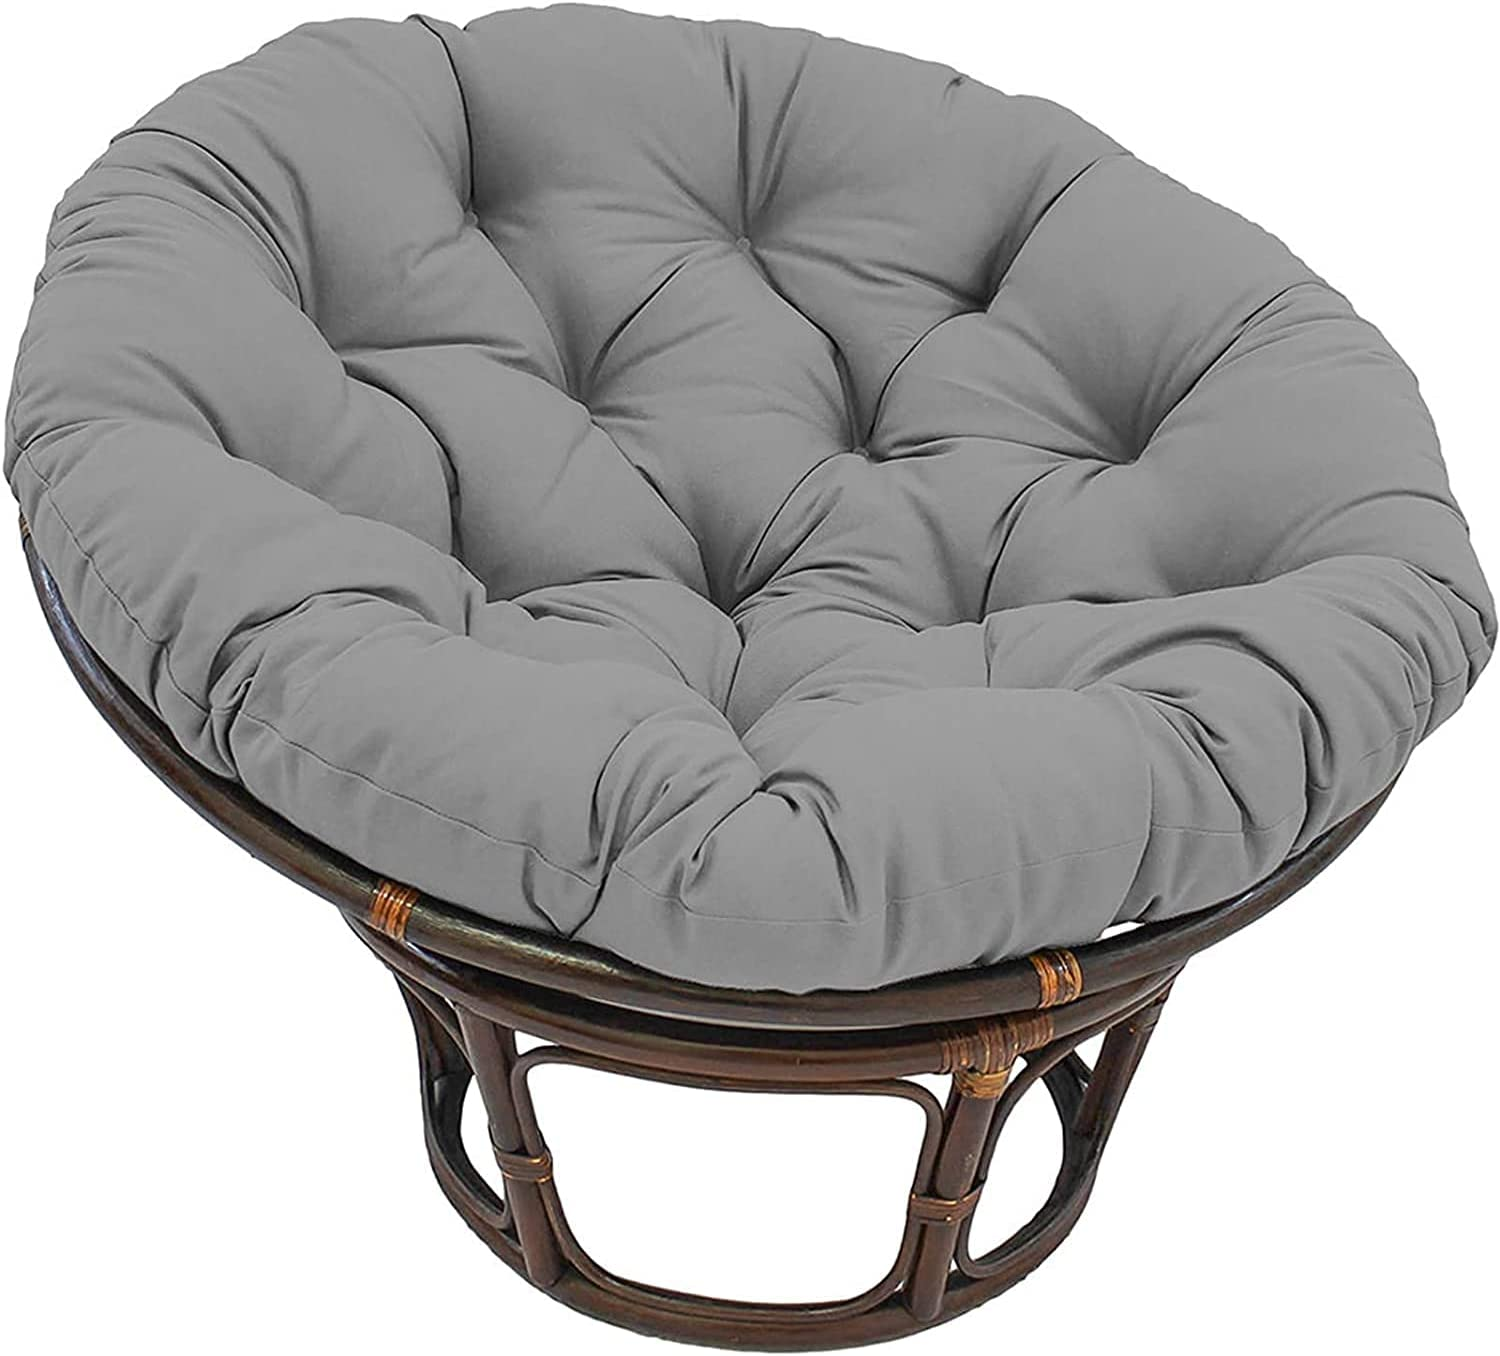 Saucer Chair Papasan Cushion Home Moon Ranking TOP11 Online limited product Outdoor Pad